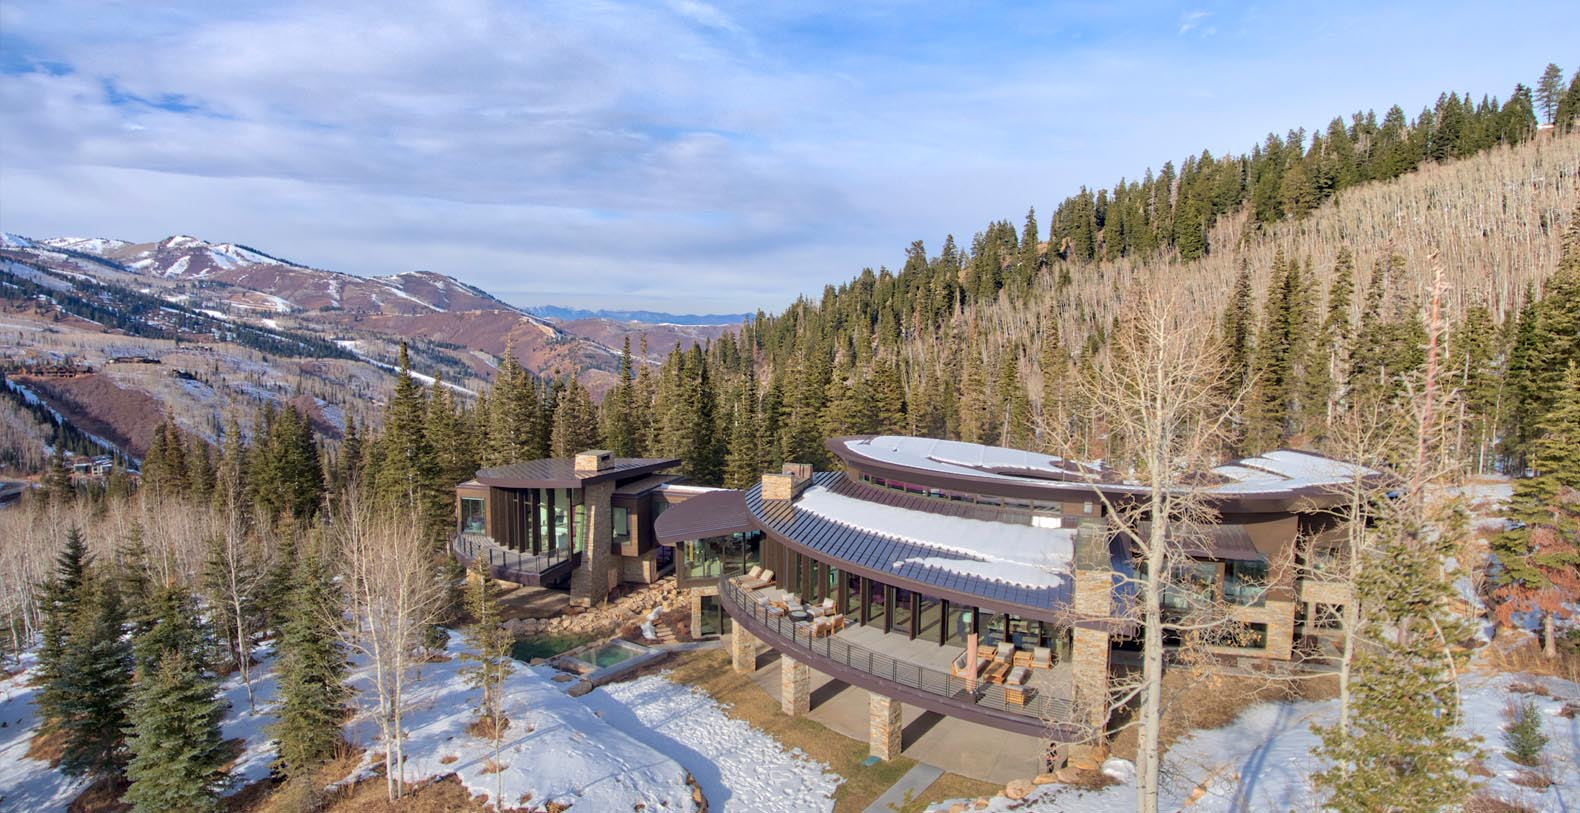 Iron Mountain Chalet Luxury Holiday Rental